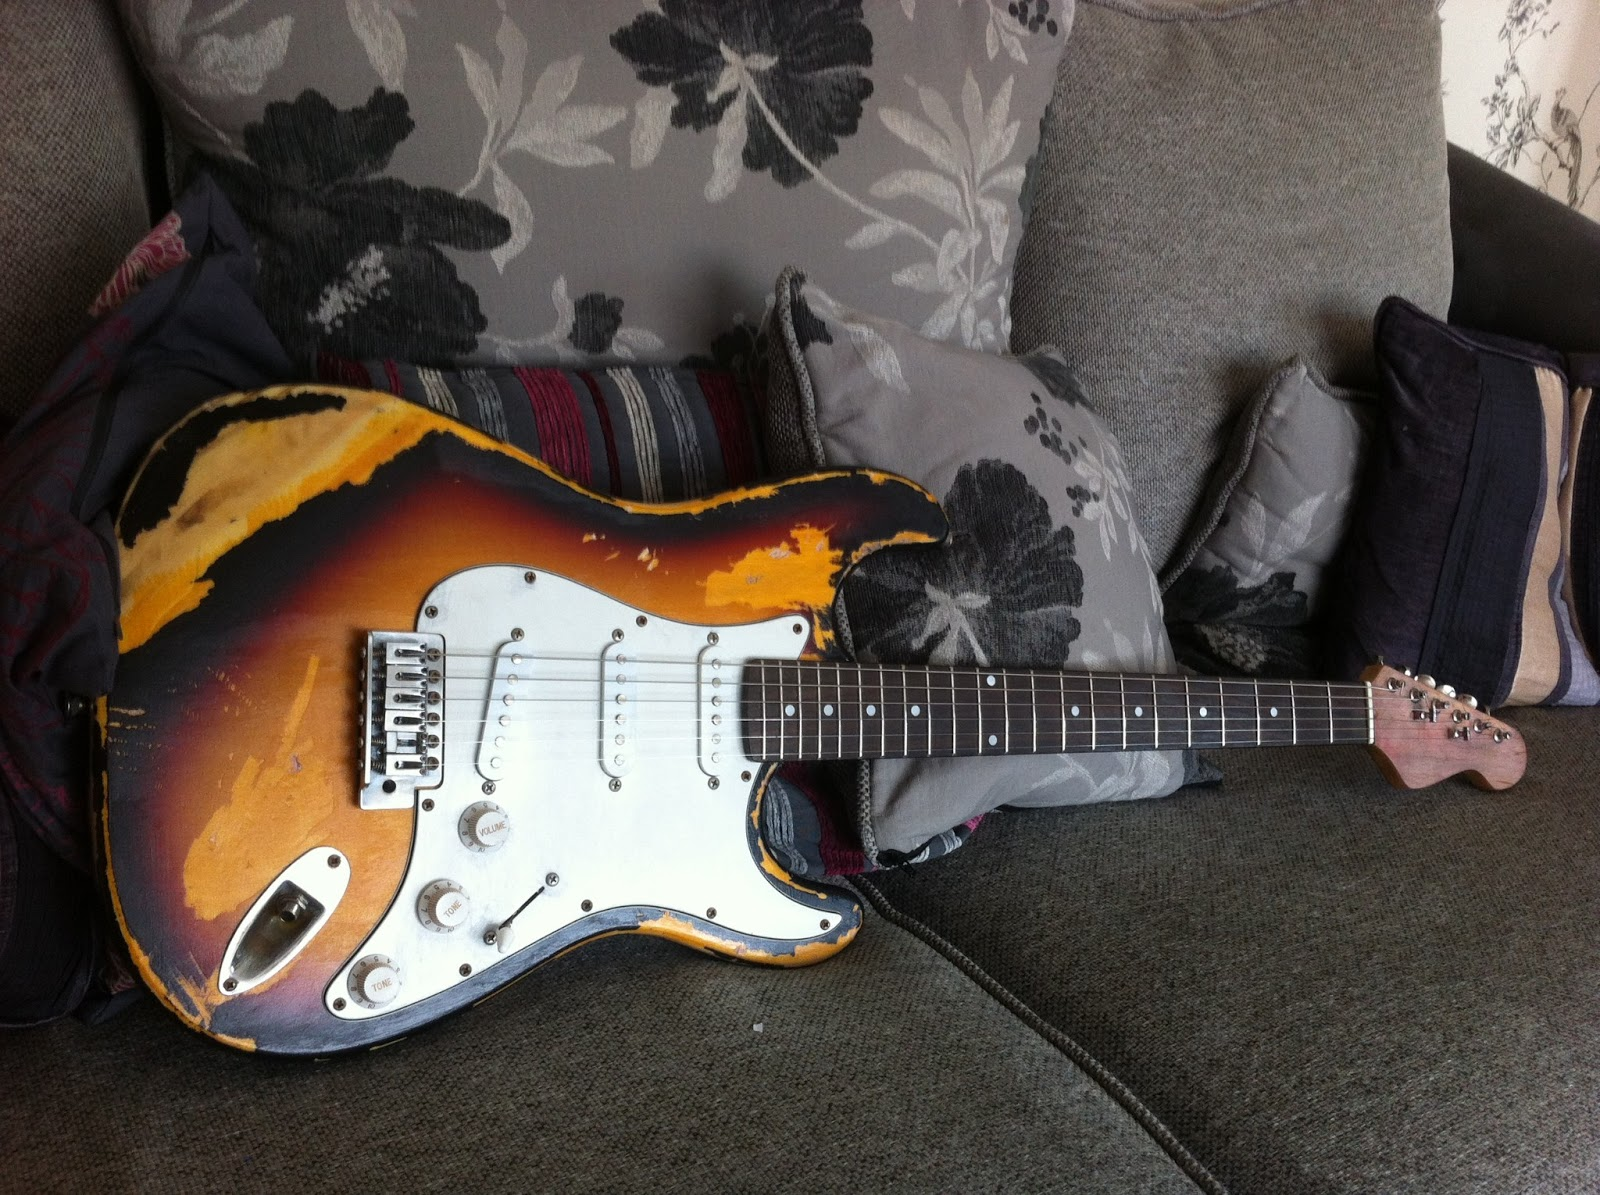 South Shields Guitar Lessons Stratocaster Project